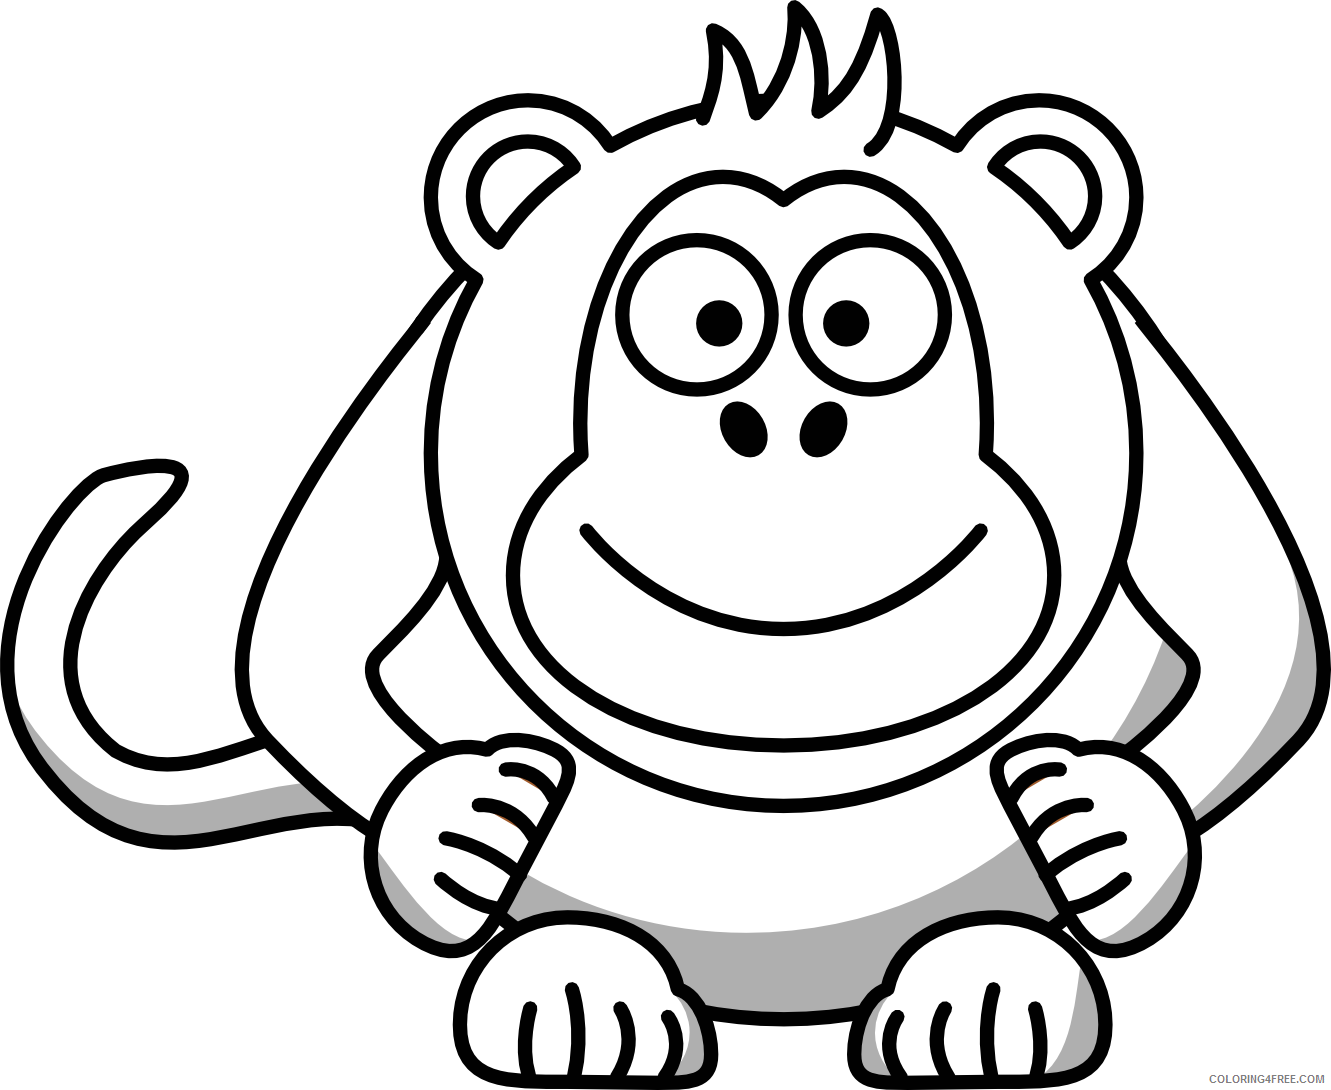 Cartoon Monkey Coloring Pages monkey cute monkeyloring Printable Coloring4free